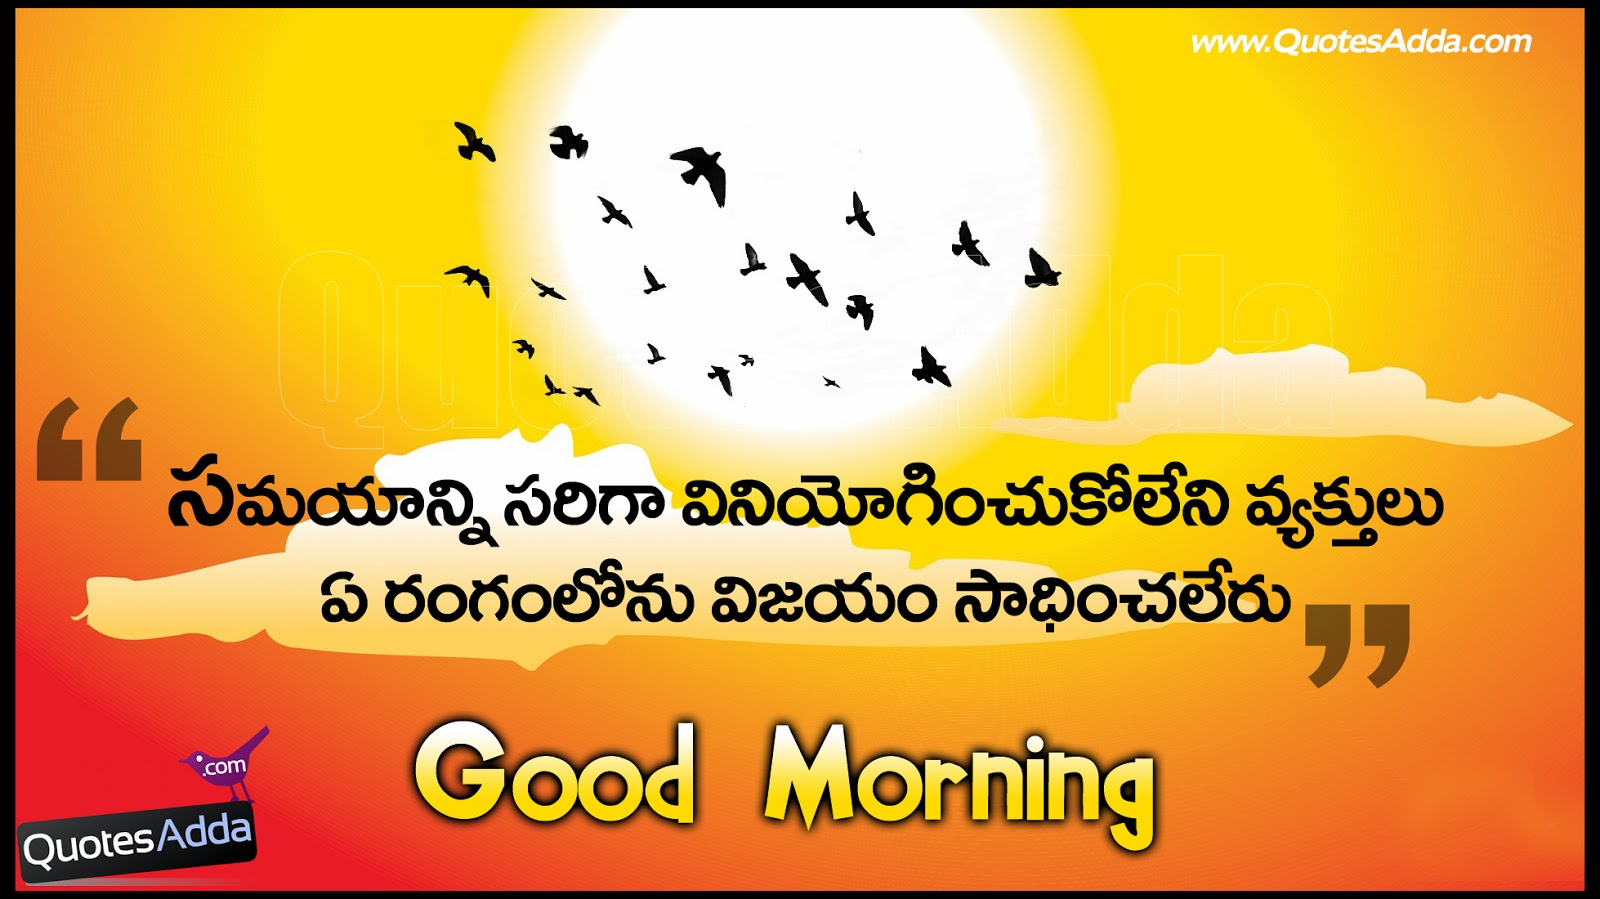 Good Morning Quotes in Telugu with Good Thoughts